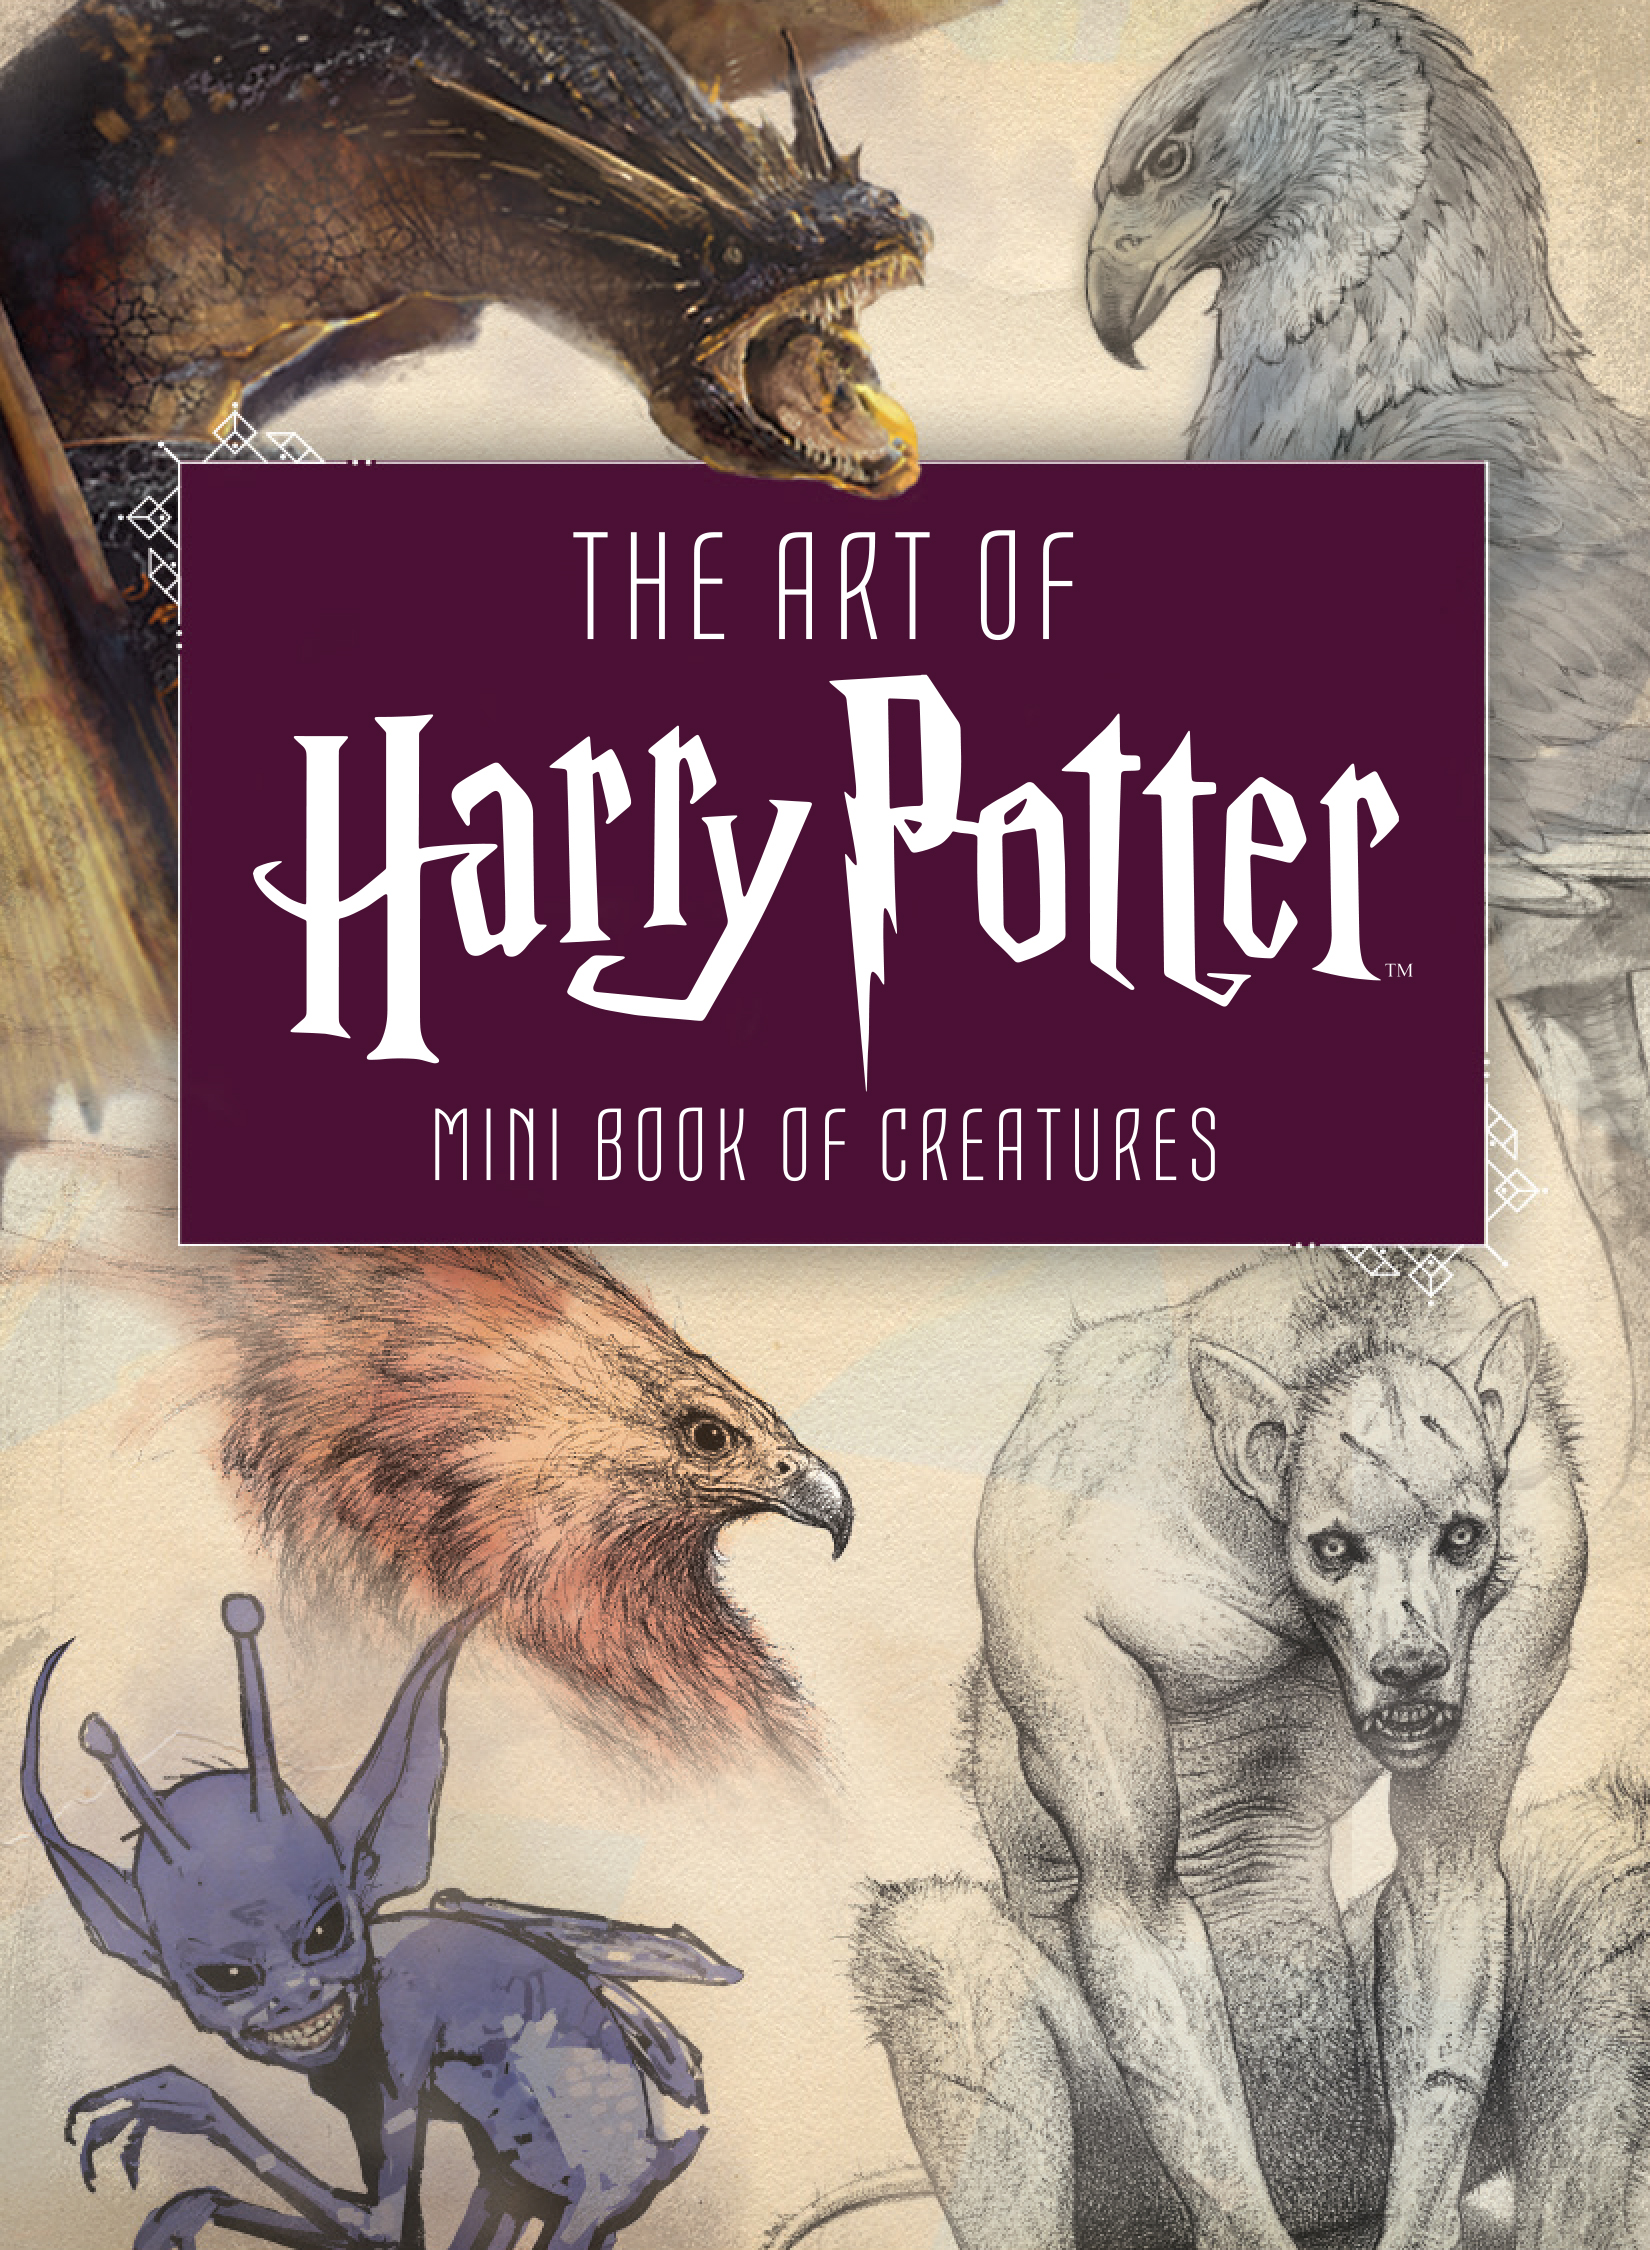 There is also a mini book about magical creatures!